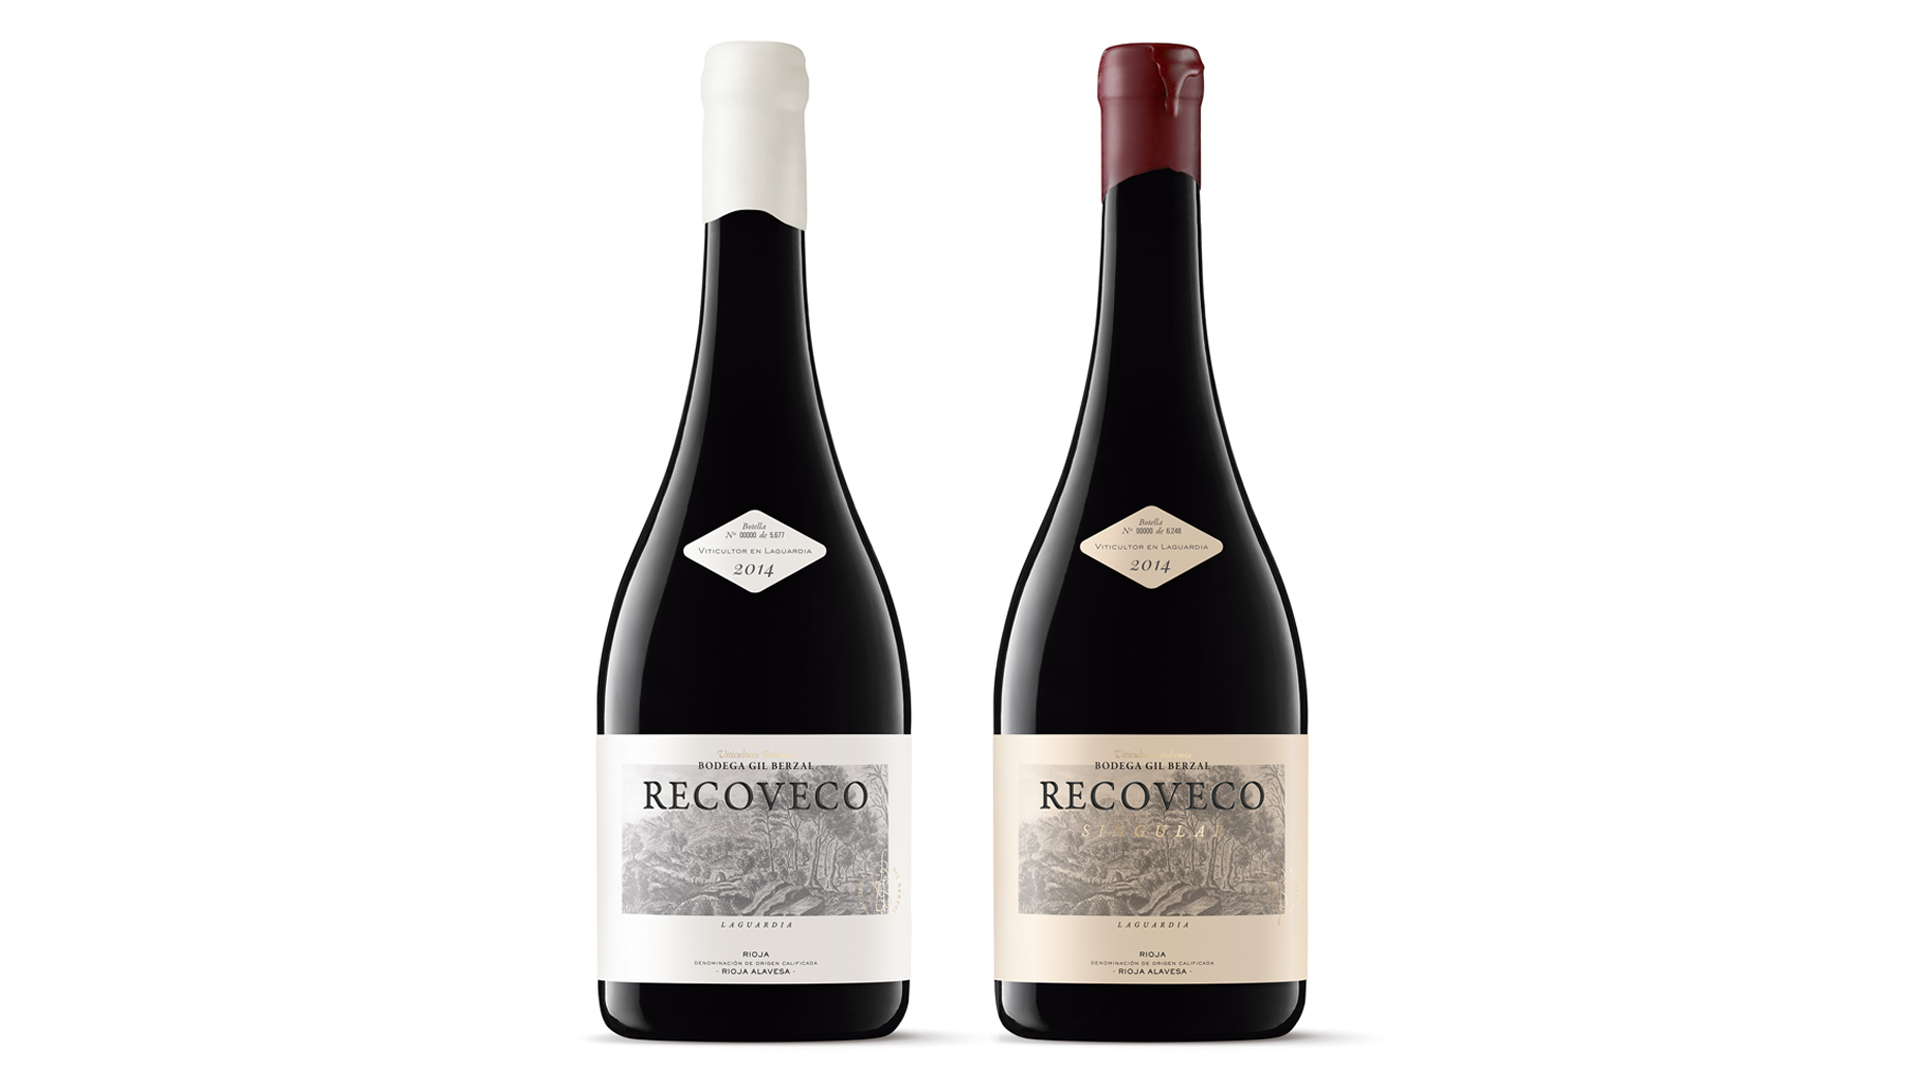 Recovecos WEB - GIL-BERZAL, Bohemian Viticulture -